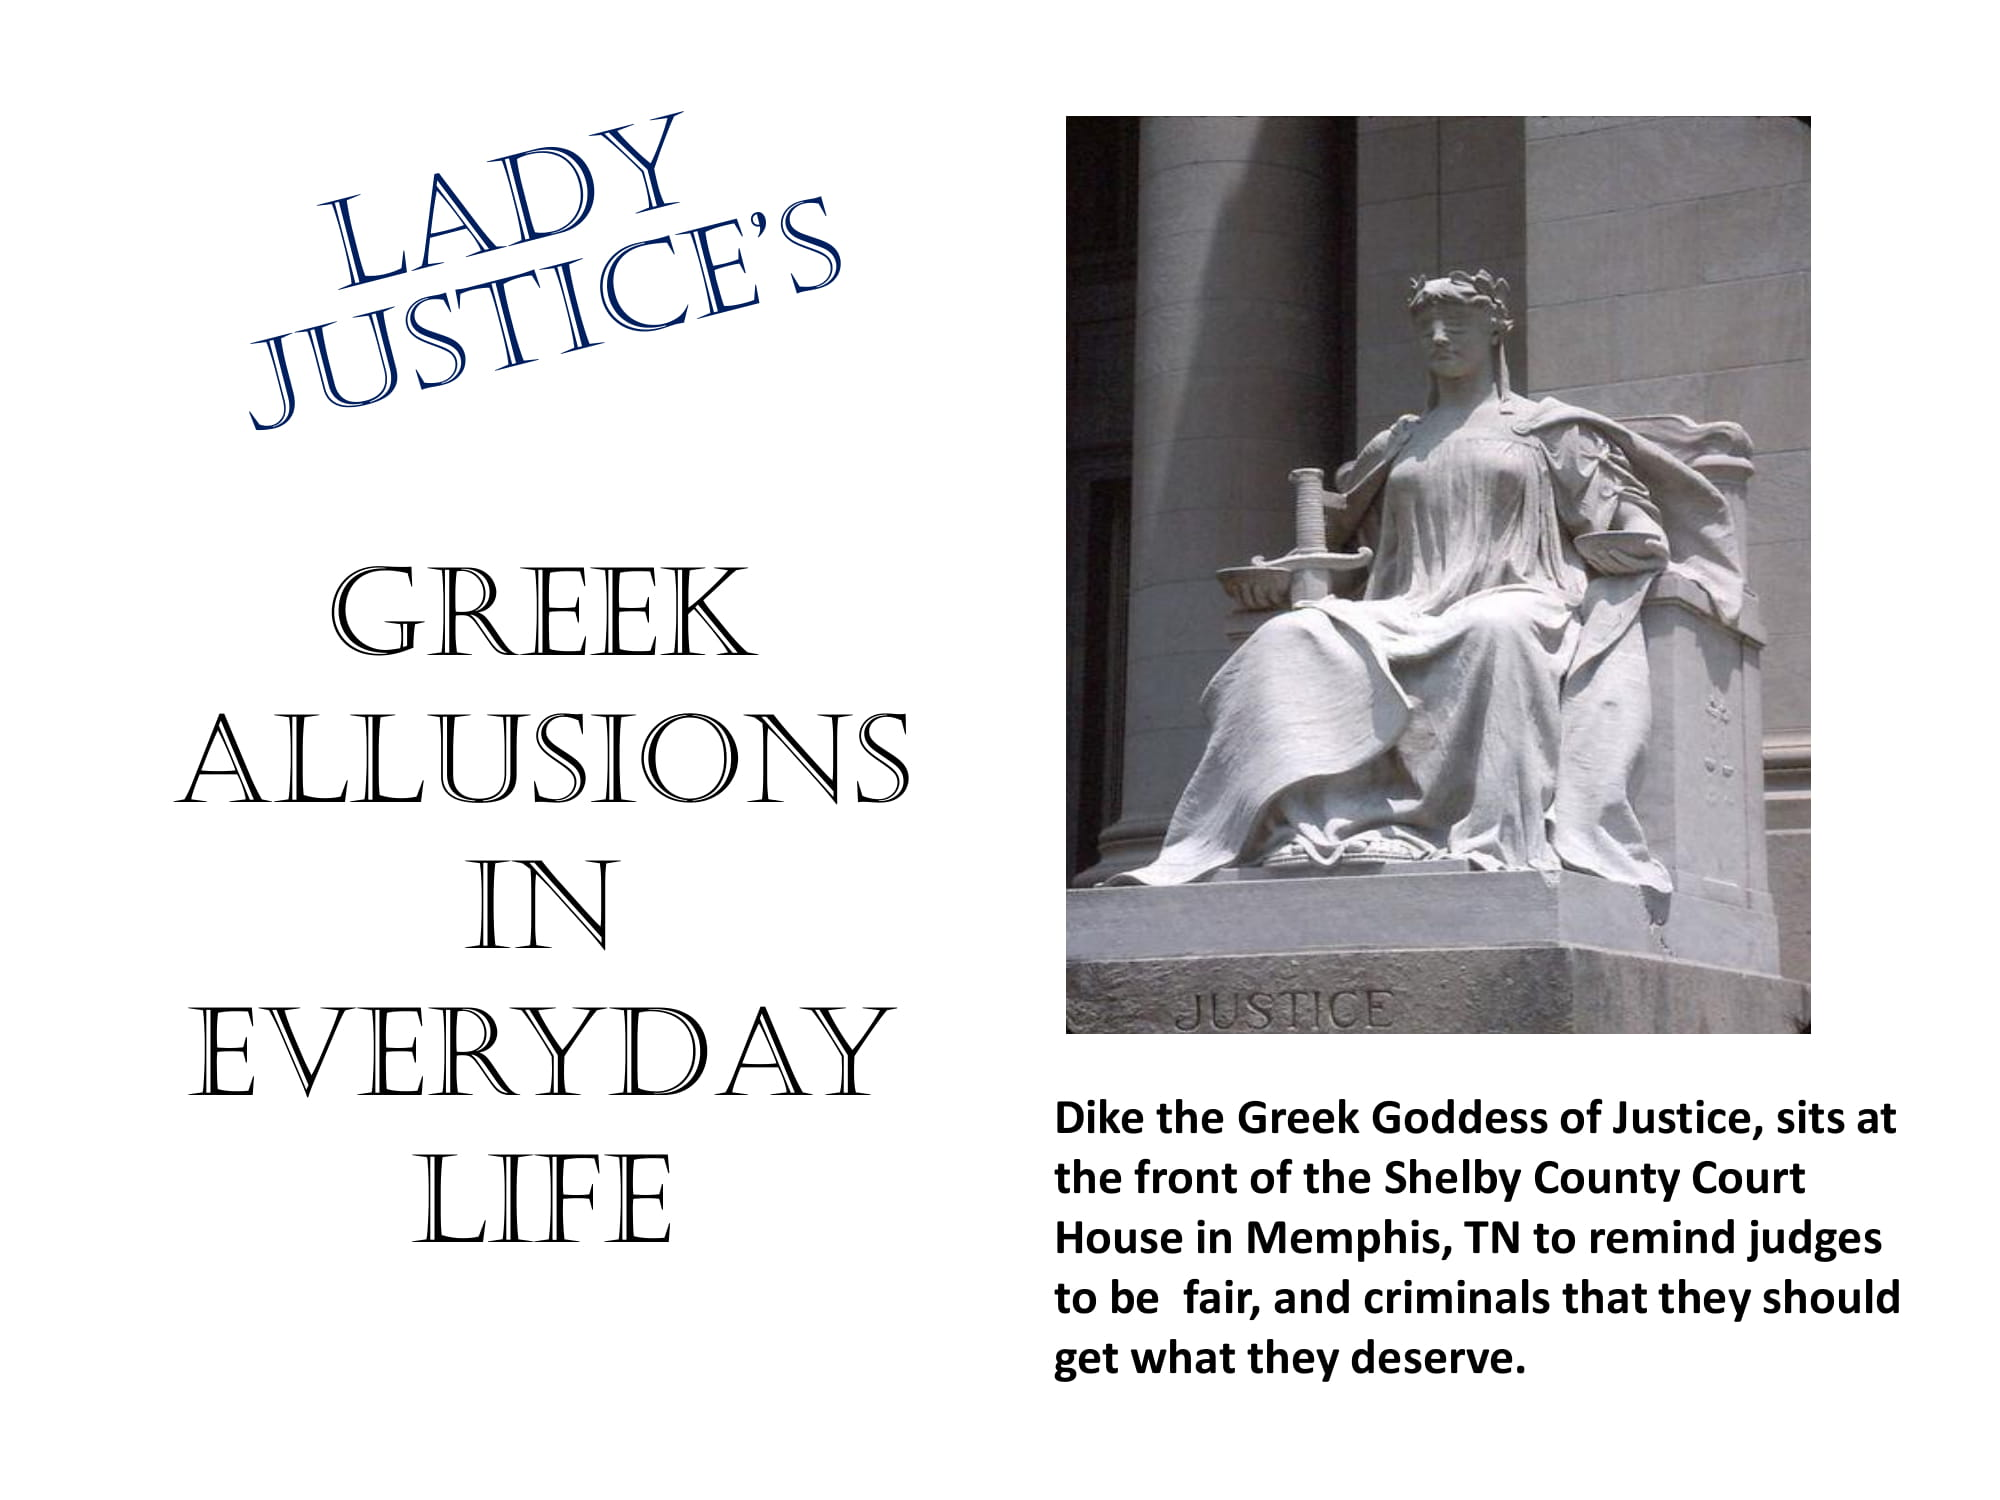 greek allusions in everyday life example